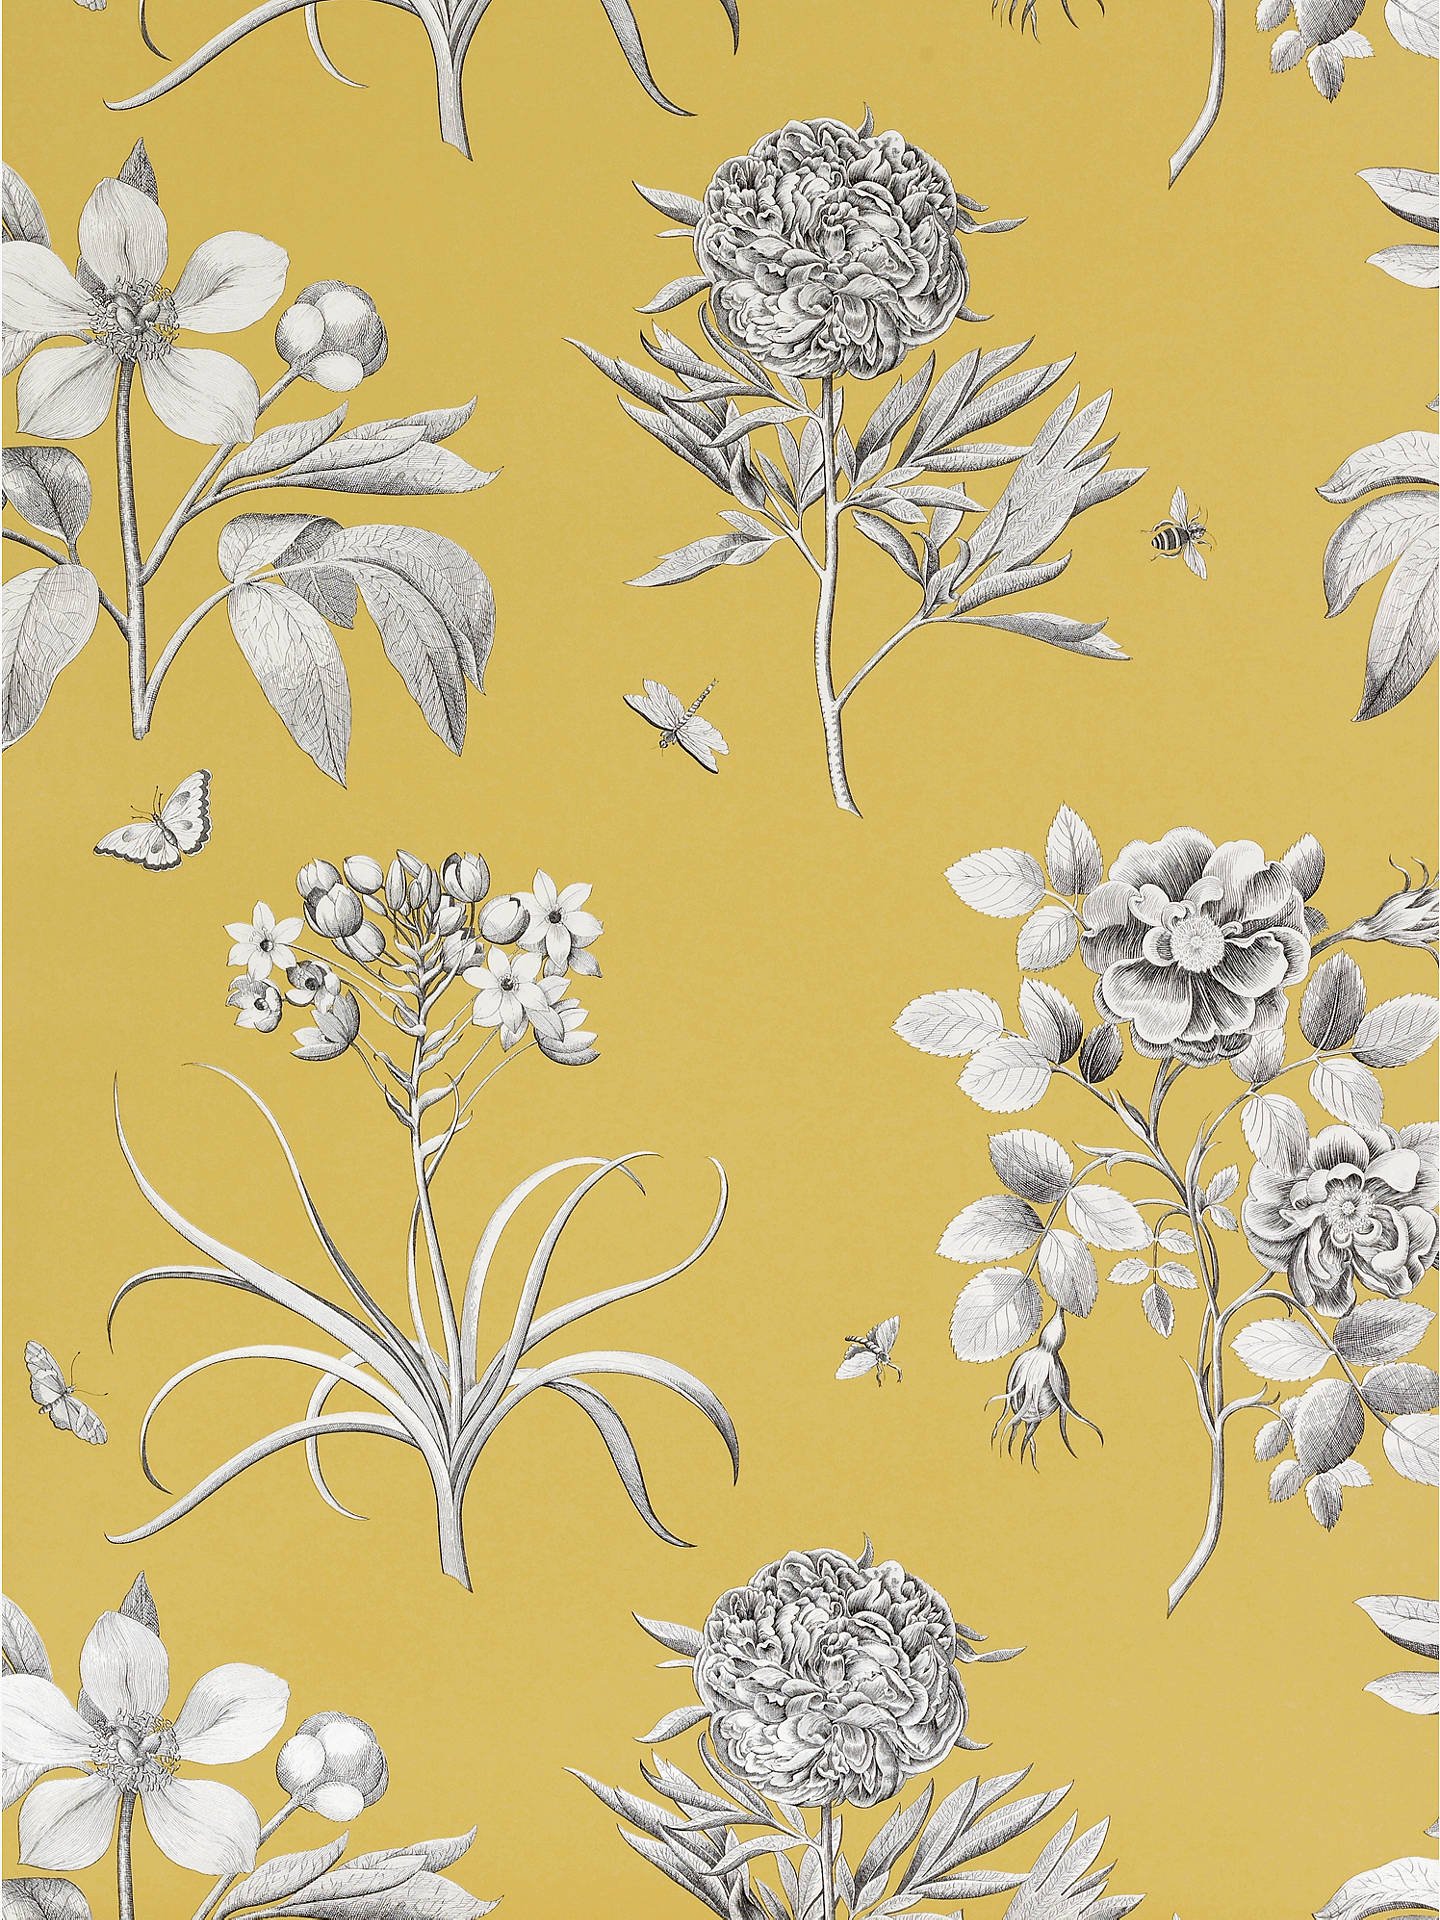 Buy Sanderson Wallpaper, Etchings and Roses DPFWER104, Yellow Online at johnlewis.com